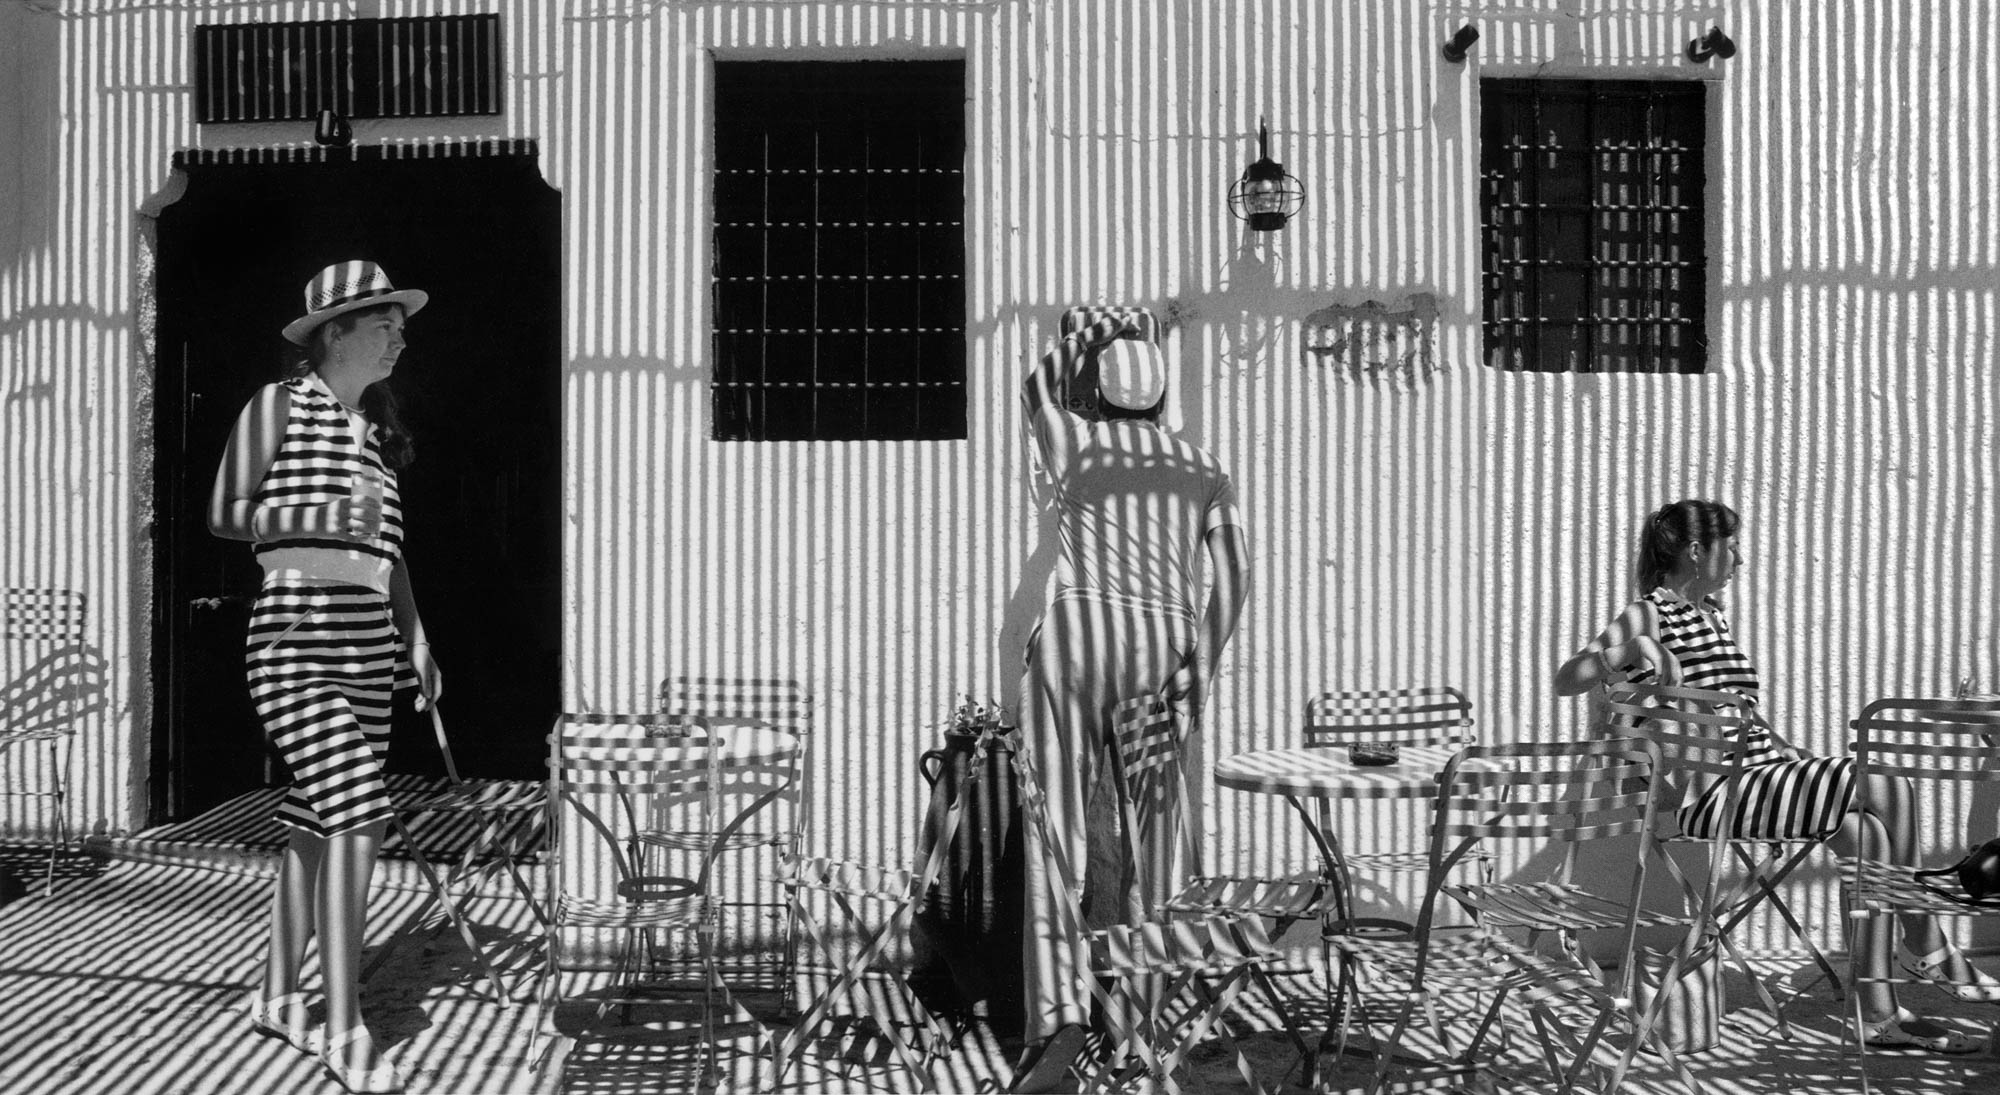 Stripes and Shadows, 1988 © HaroldFeinstein, Courtesy Galerie Thierry Bigaignon